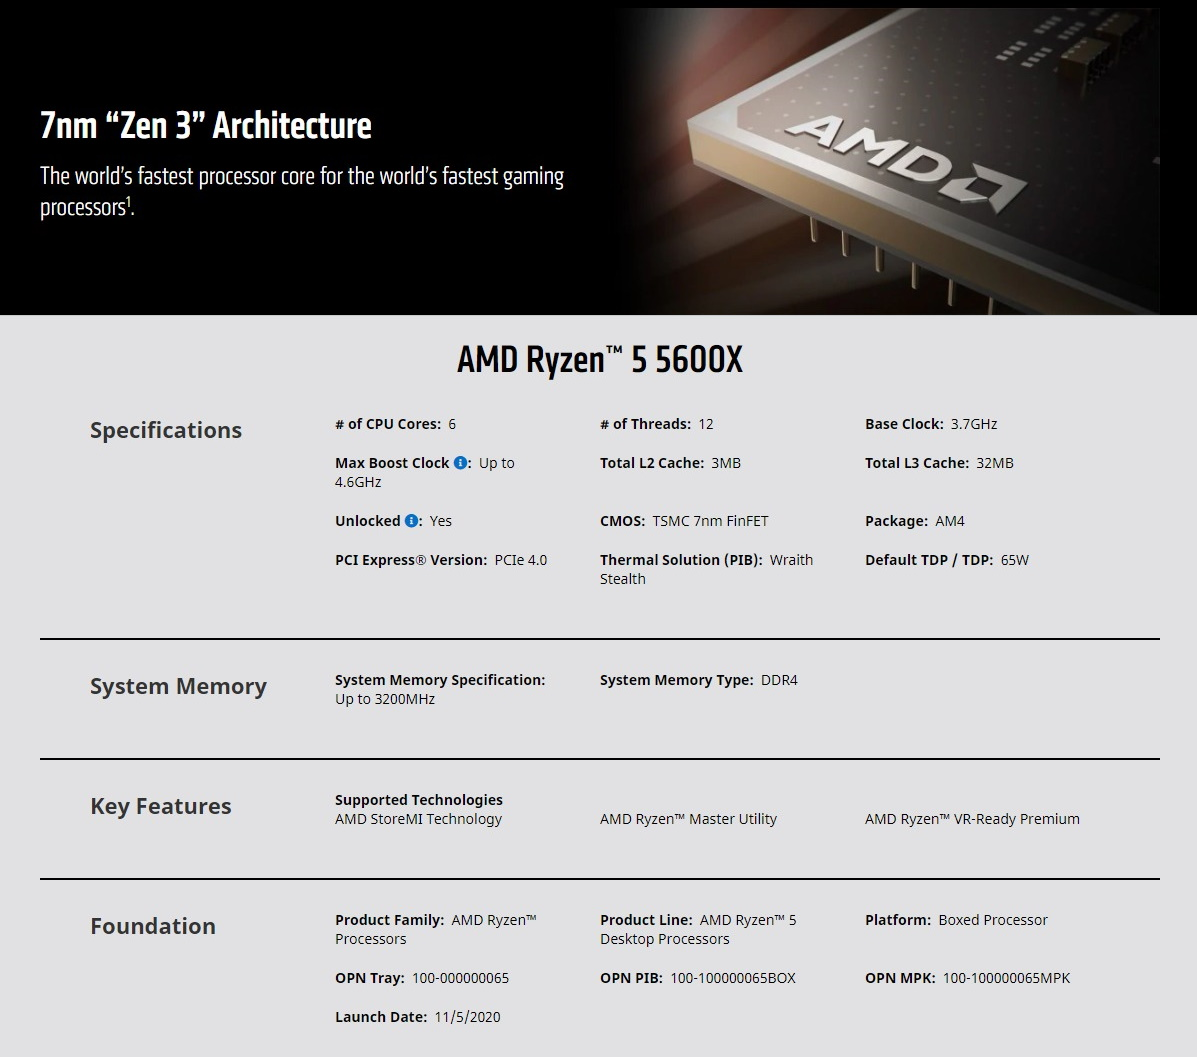 A large marketing image providing additional information about the product AMD Ryzen 5 5600X 3.7Ghz 6 Core 12 Thread AM4 - With Wraith Stealth Cooler - Additional alt info not provided